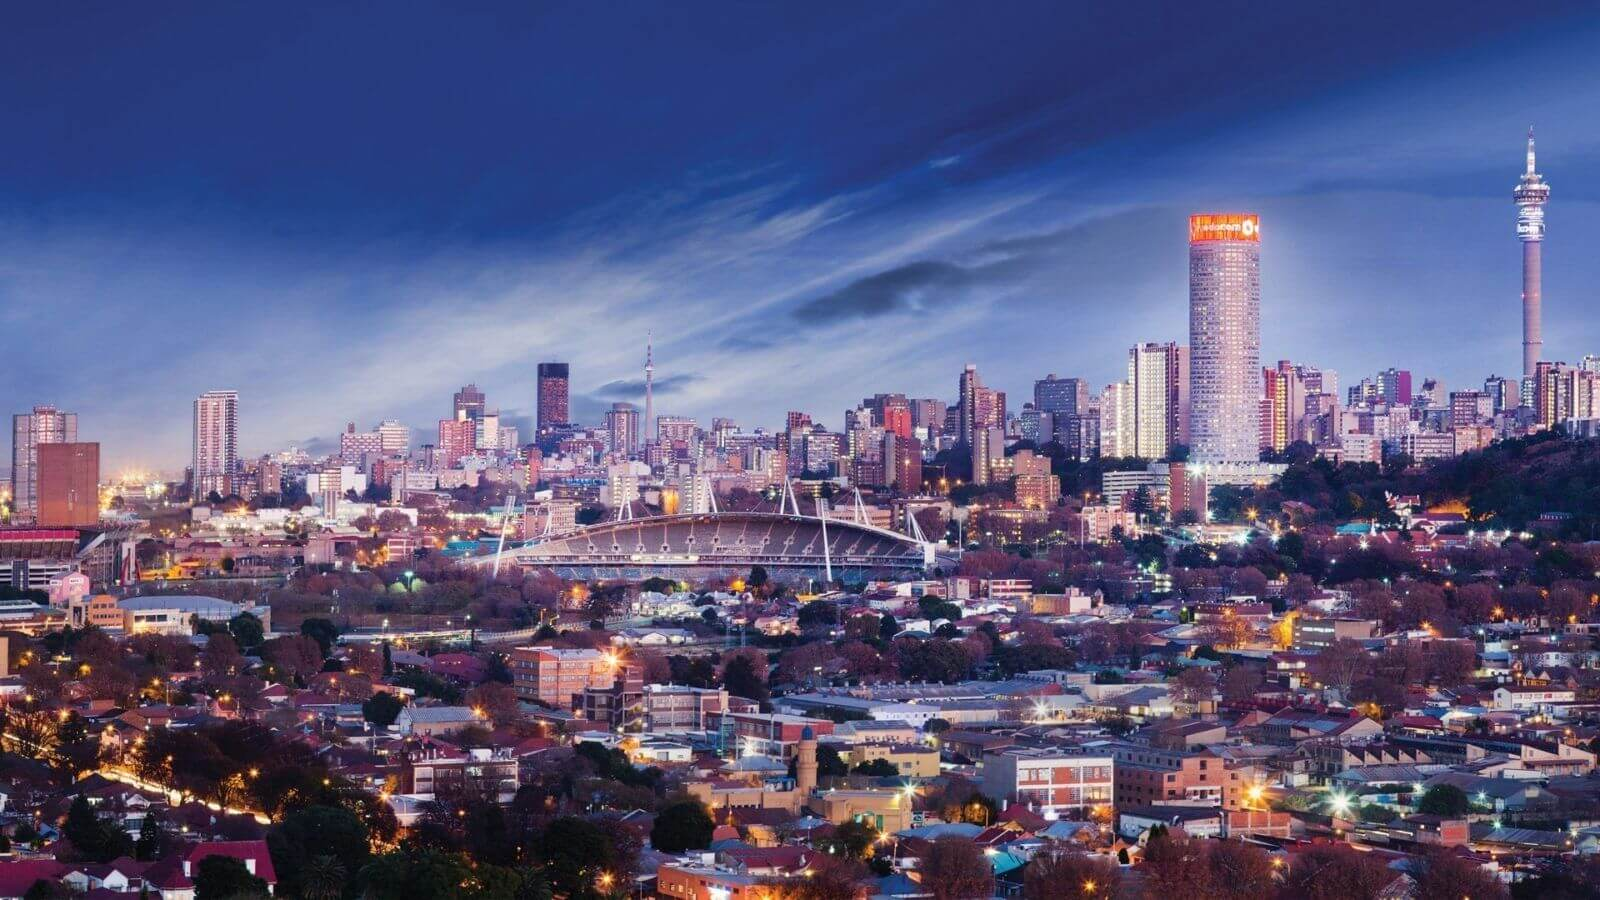 Honeymoon in SOUTH AFRICA-JOHANNESBURG Holiday Travel & Tour Package